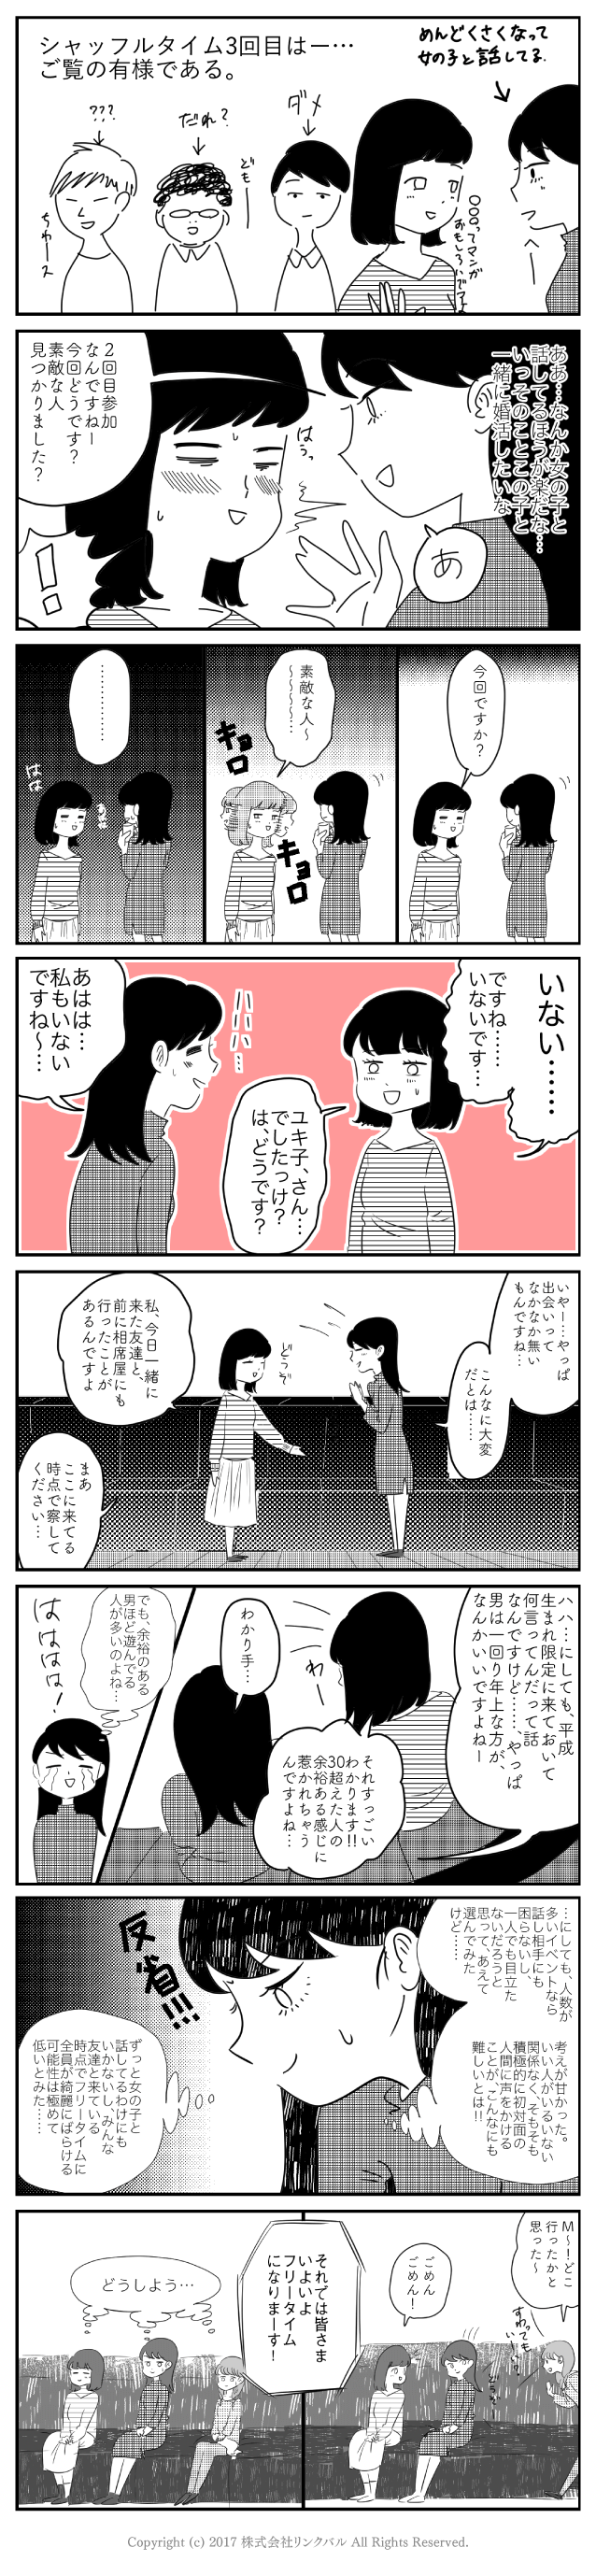 https://machicon.jp/ivery/wp-content/uploads/2017/04/ab50220eb1e76ee460adeef0020ef2b3.png